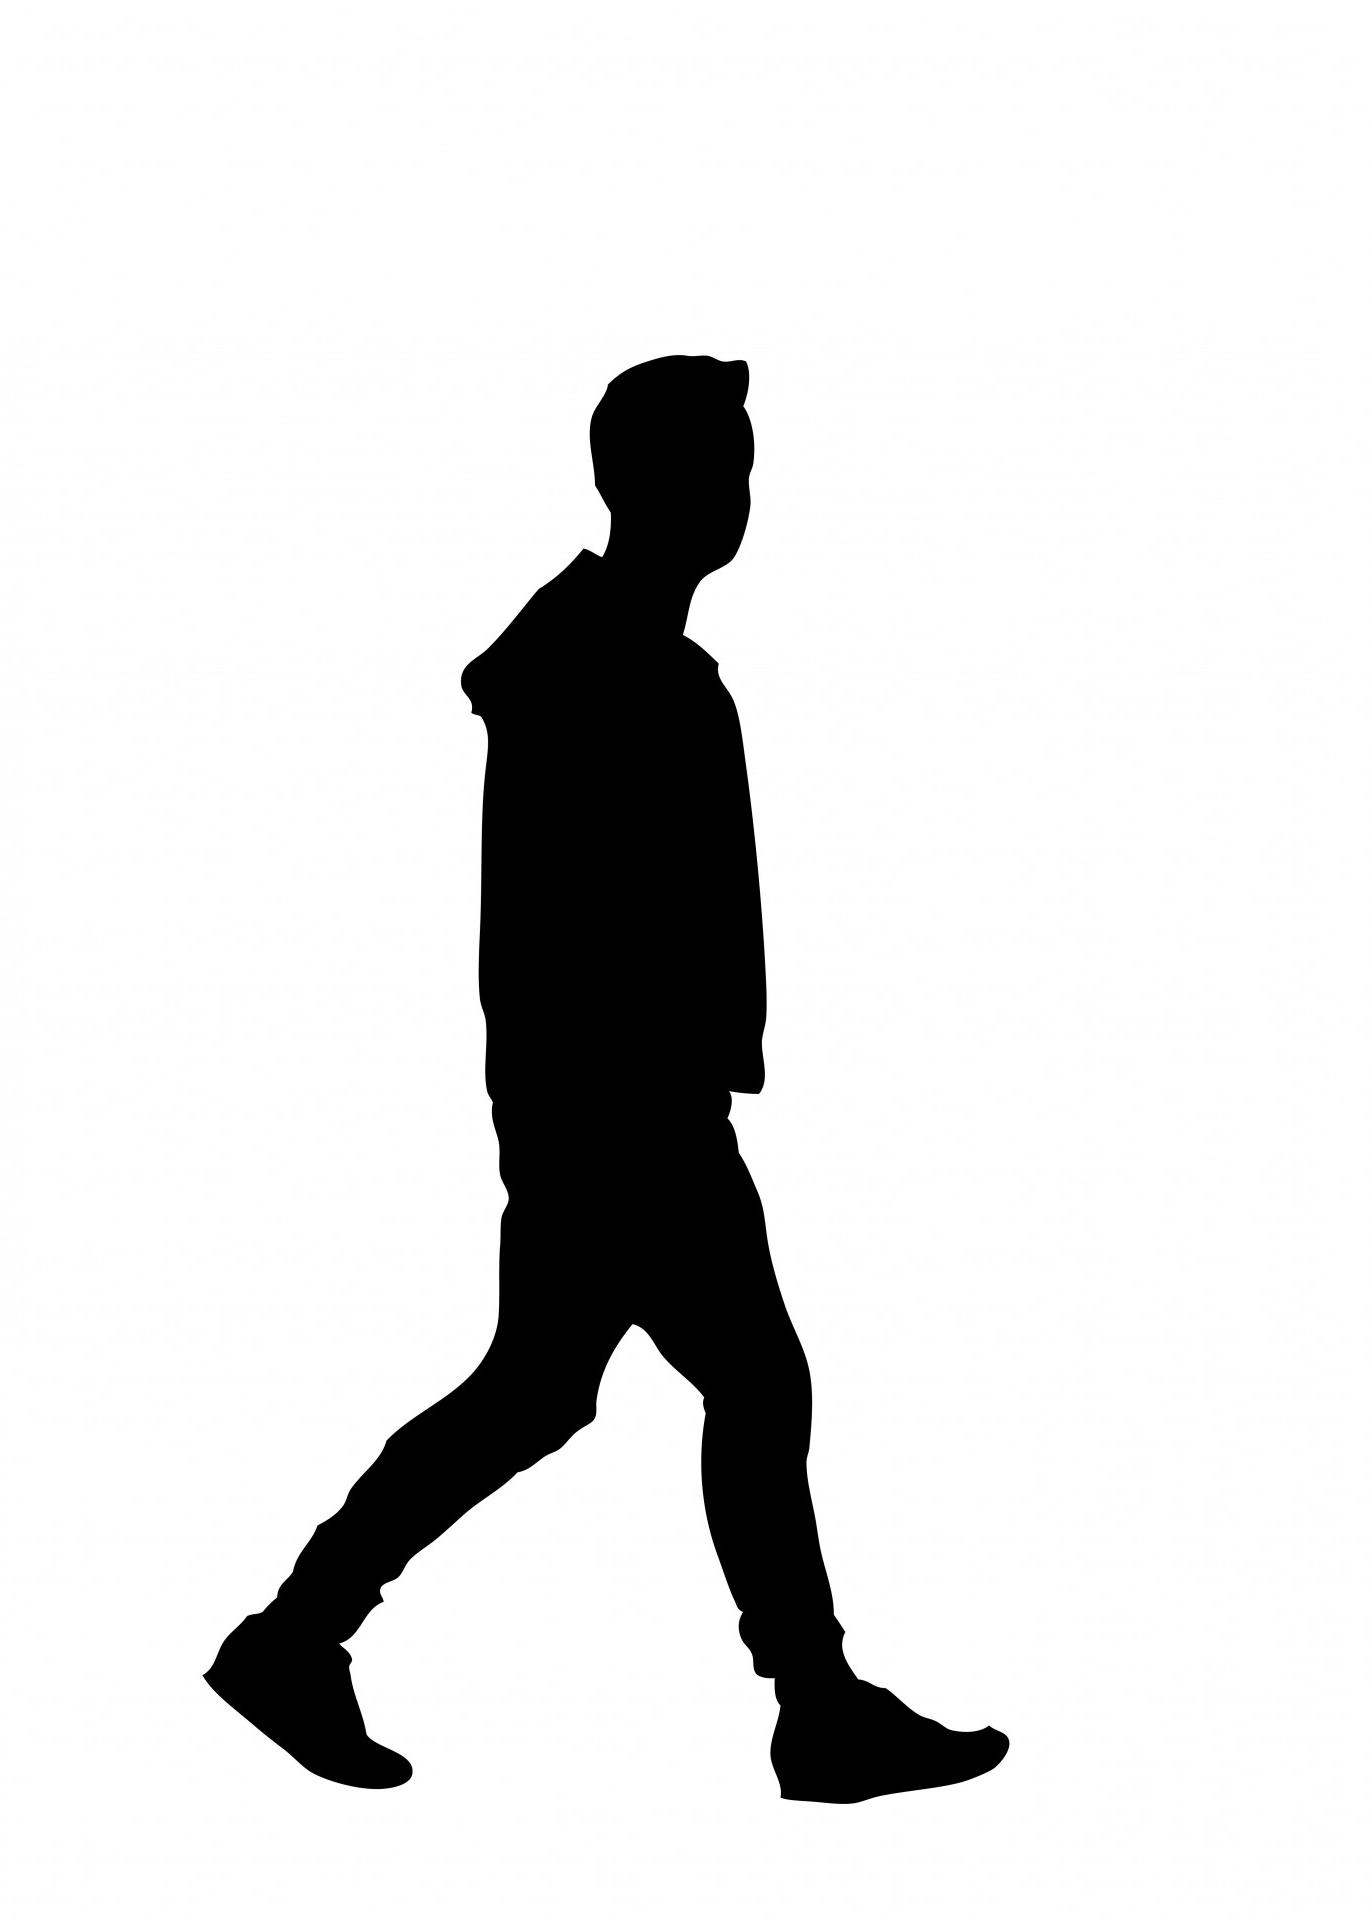 Free Photo Walking Man Silhouette Airport Blackandwhite Business Free Download Jooinn Free for commercial use no attribution required high quality images. free photo walking man silhouette